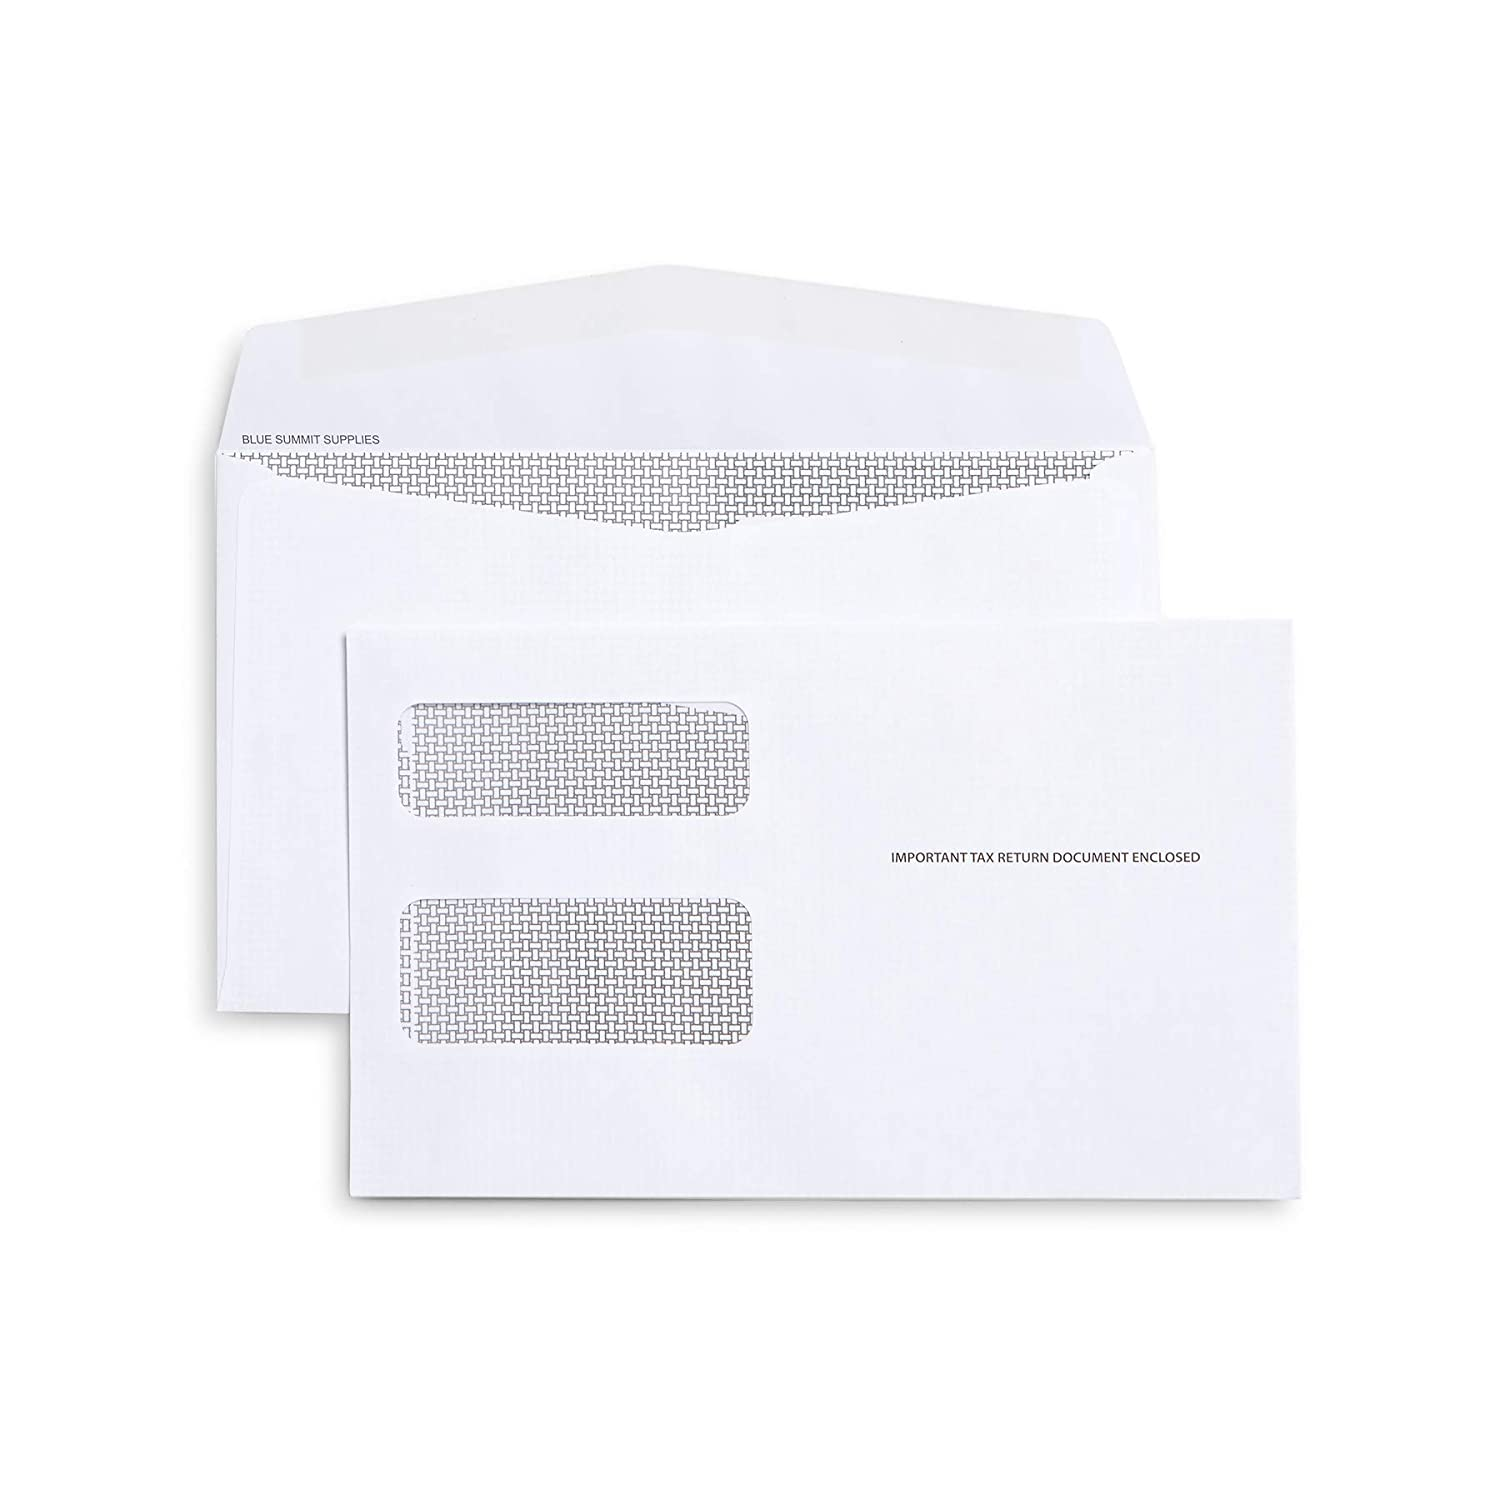 25 1099 MISC Tax envelopes – Designed for Printed 1099 Laser Forms from QuickBooks or Similar Tax Software – 5 5/8'' x 9'', Gummed Flap, 25 Form Envelopes (-026) Blue Summit Supplies